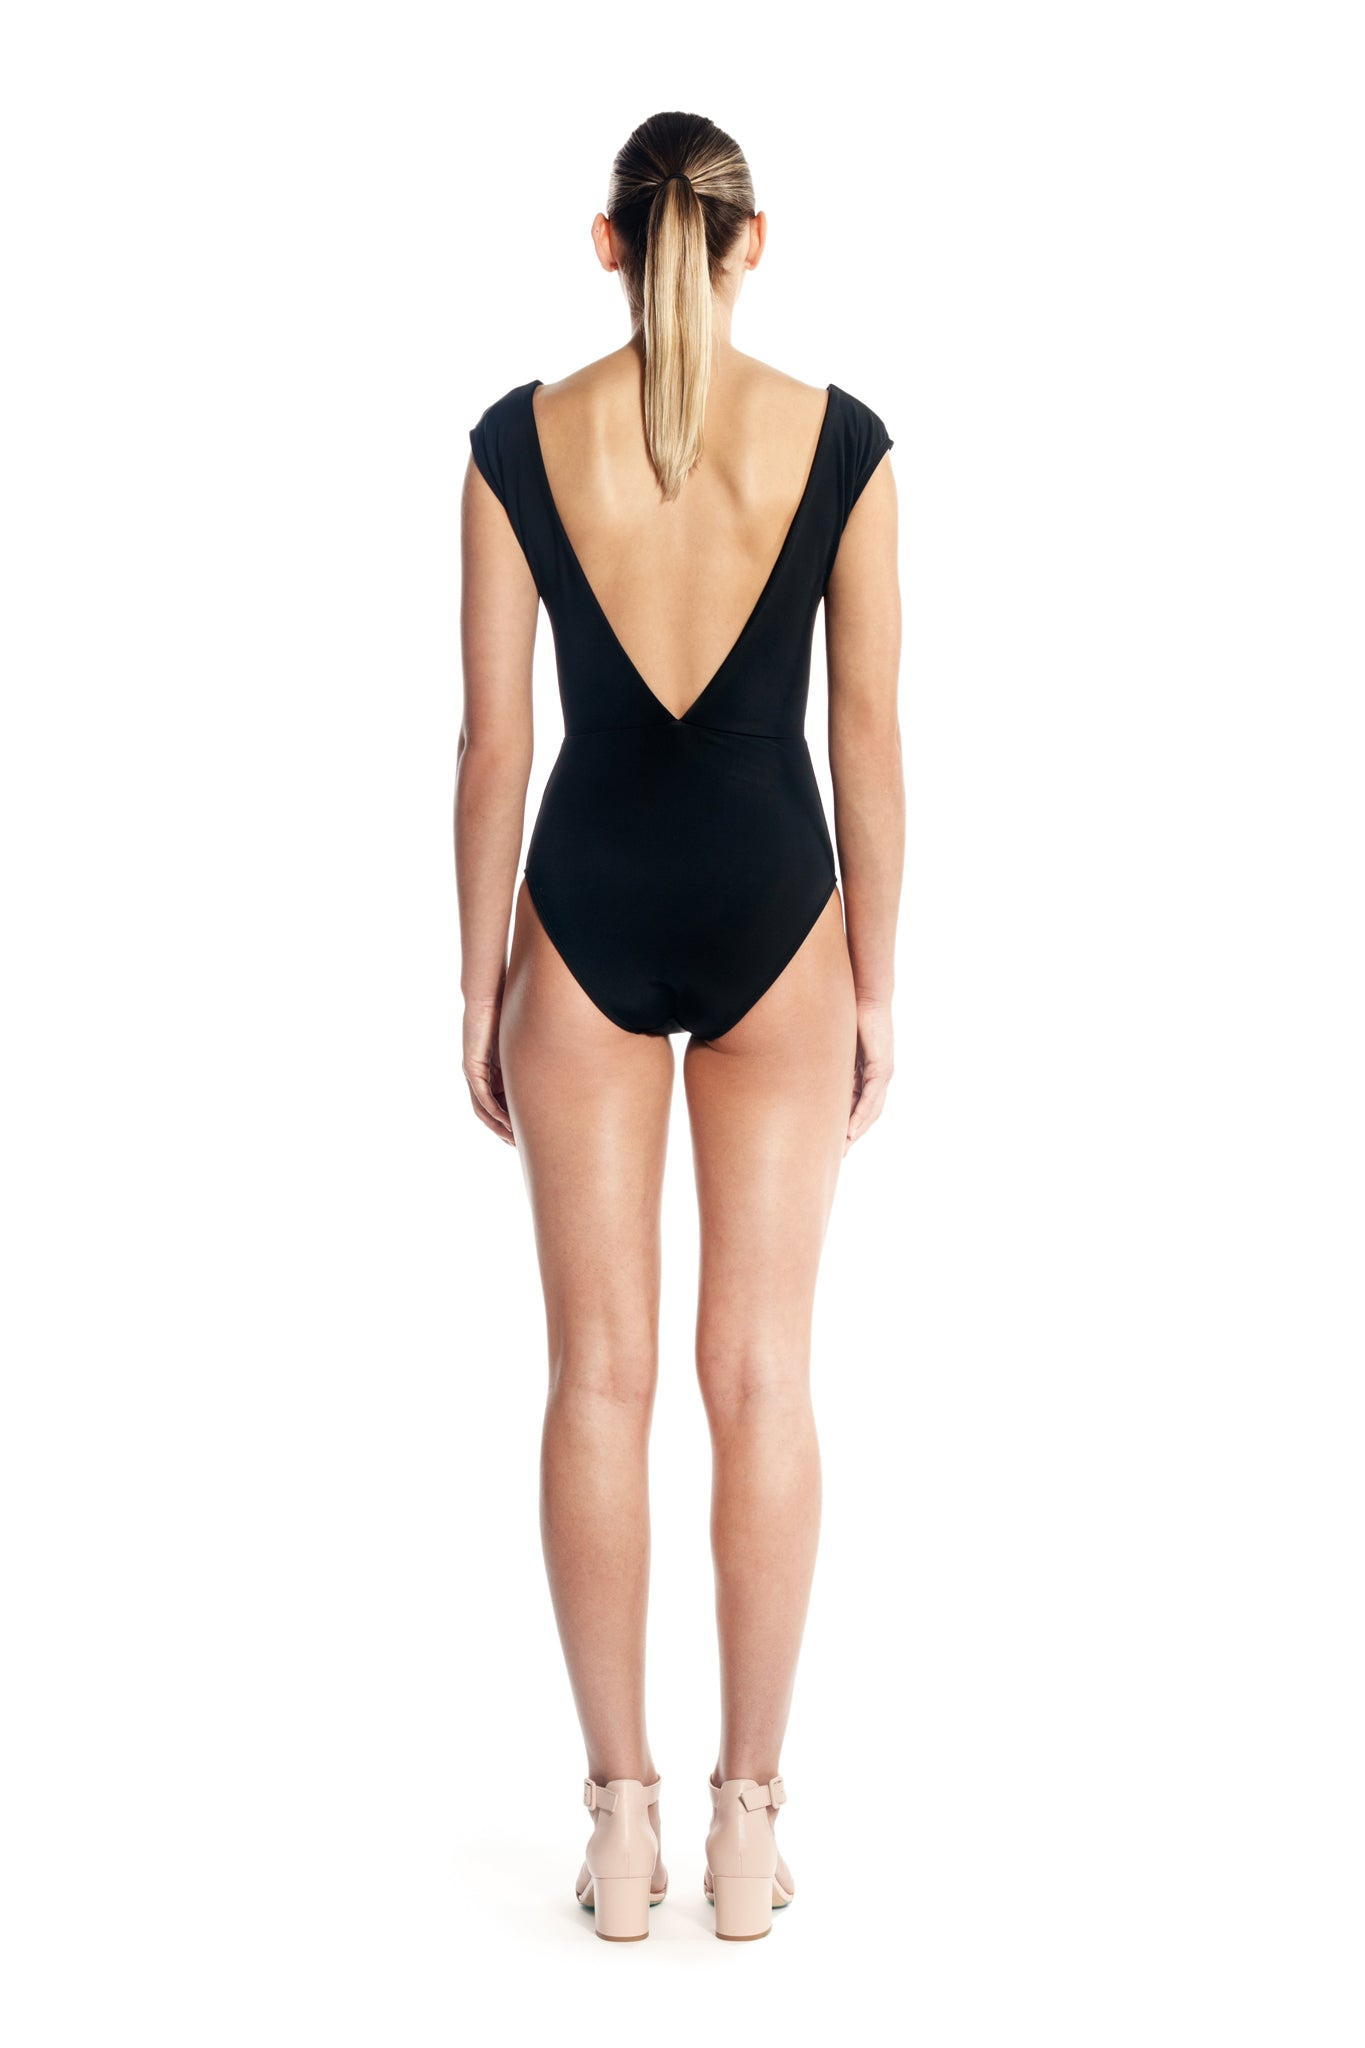 TWIST ONE PIECE - BLACK